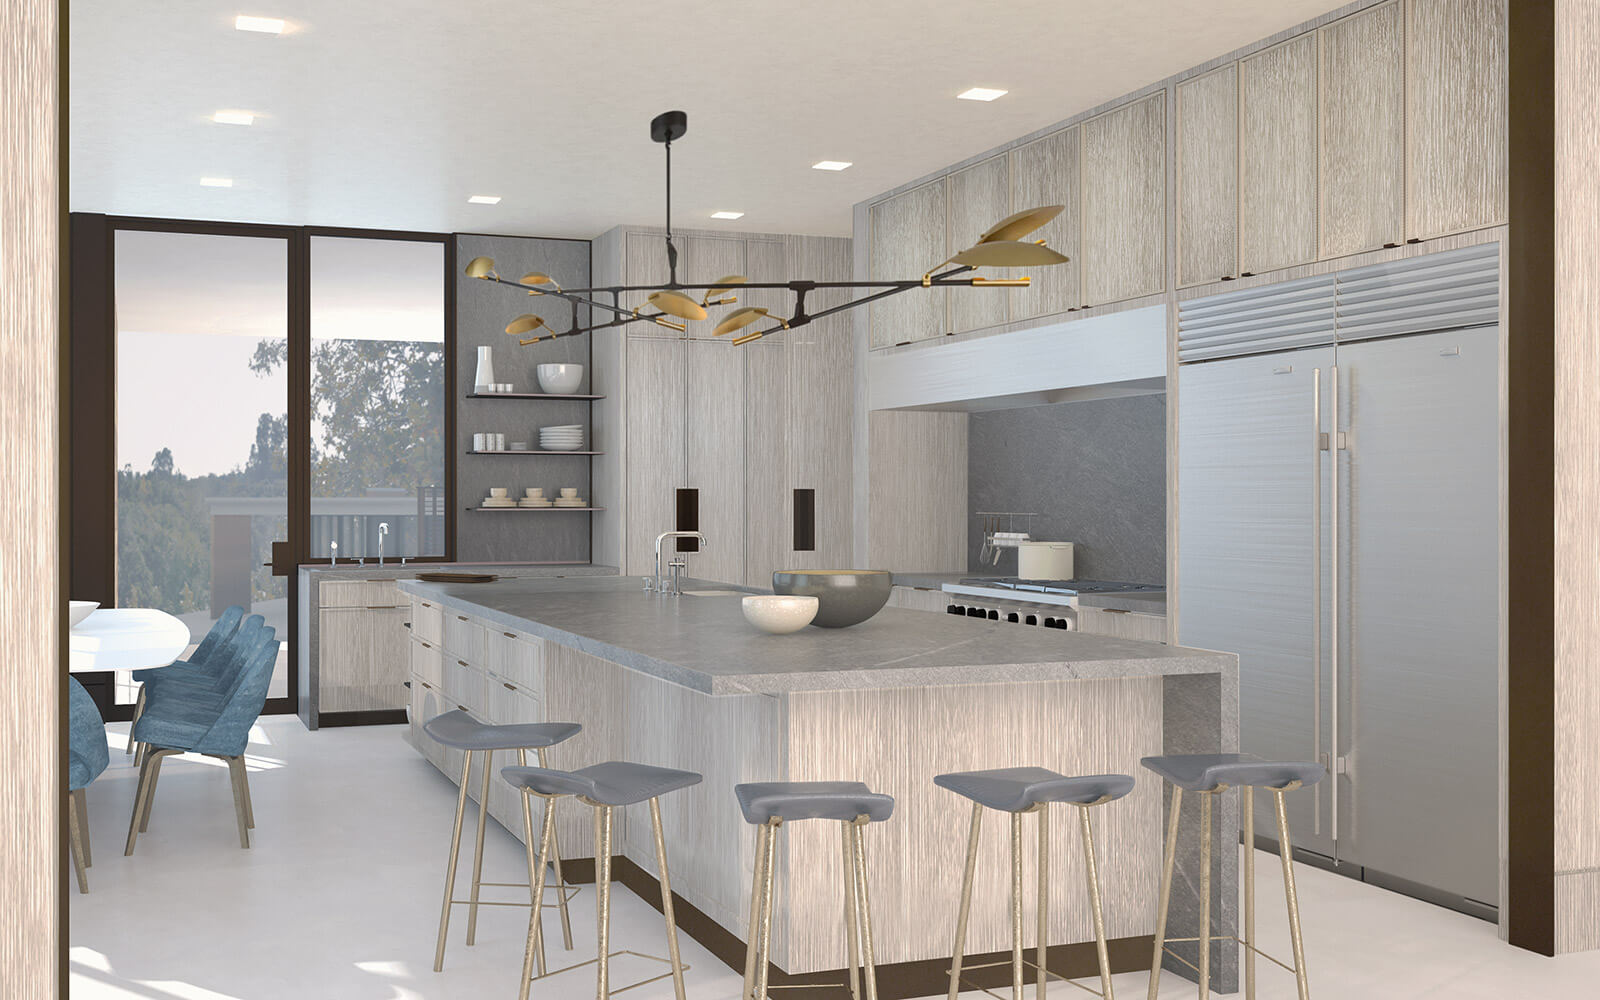 studio vara residential woodside i kitchen interior